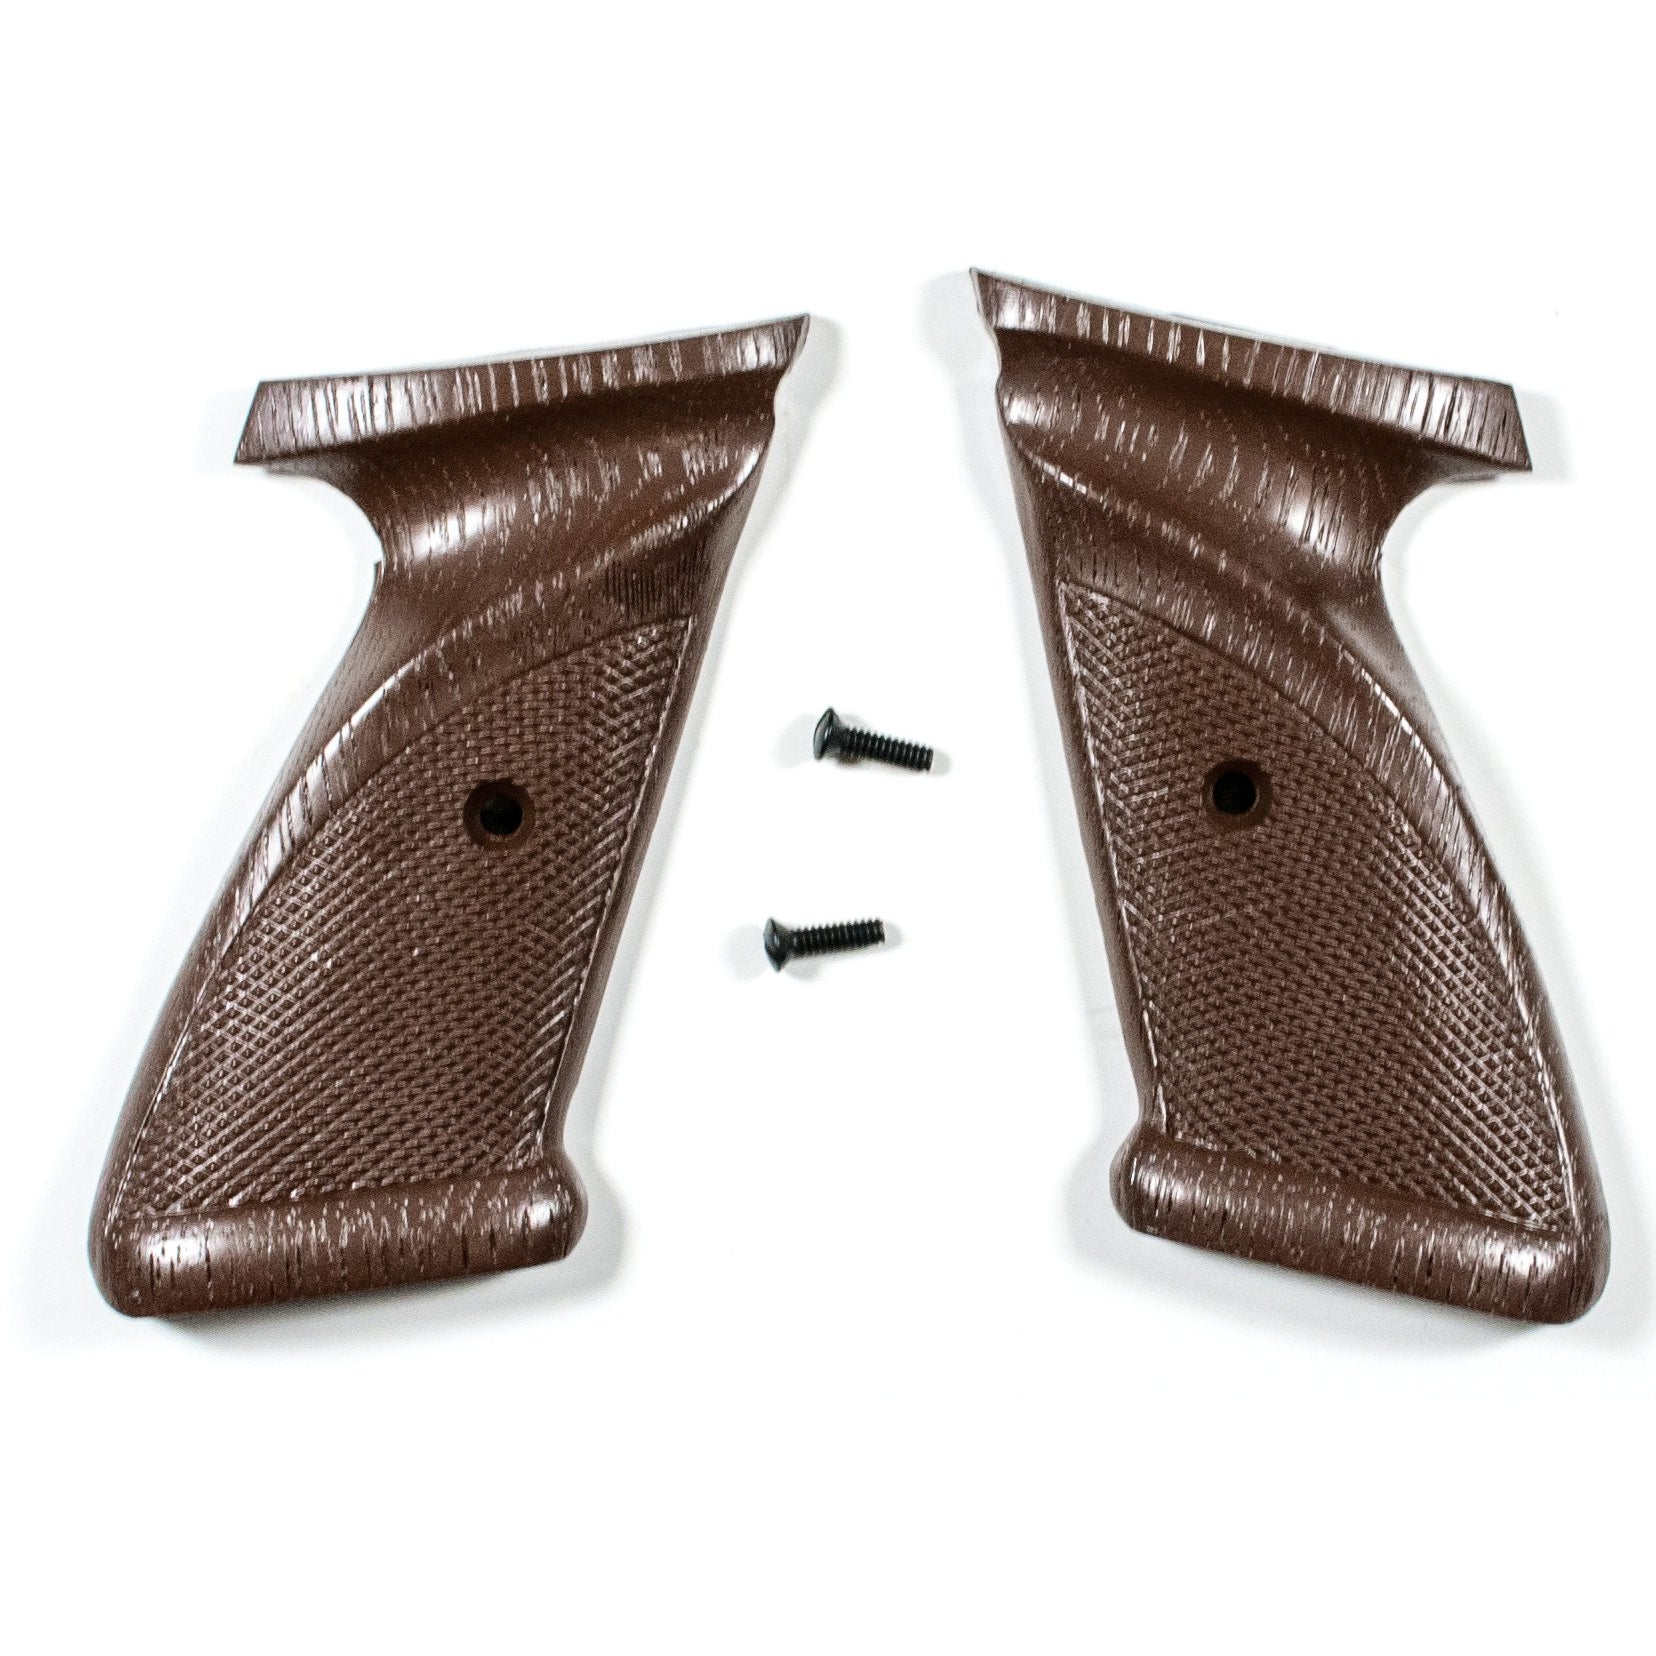 Crosman Mod.1377 Set of Plastic RH & LH Grip Panels with Screw,Gunsmith's Parts- Canada Brass